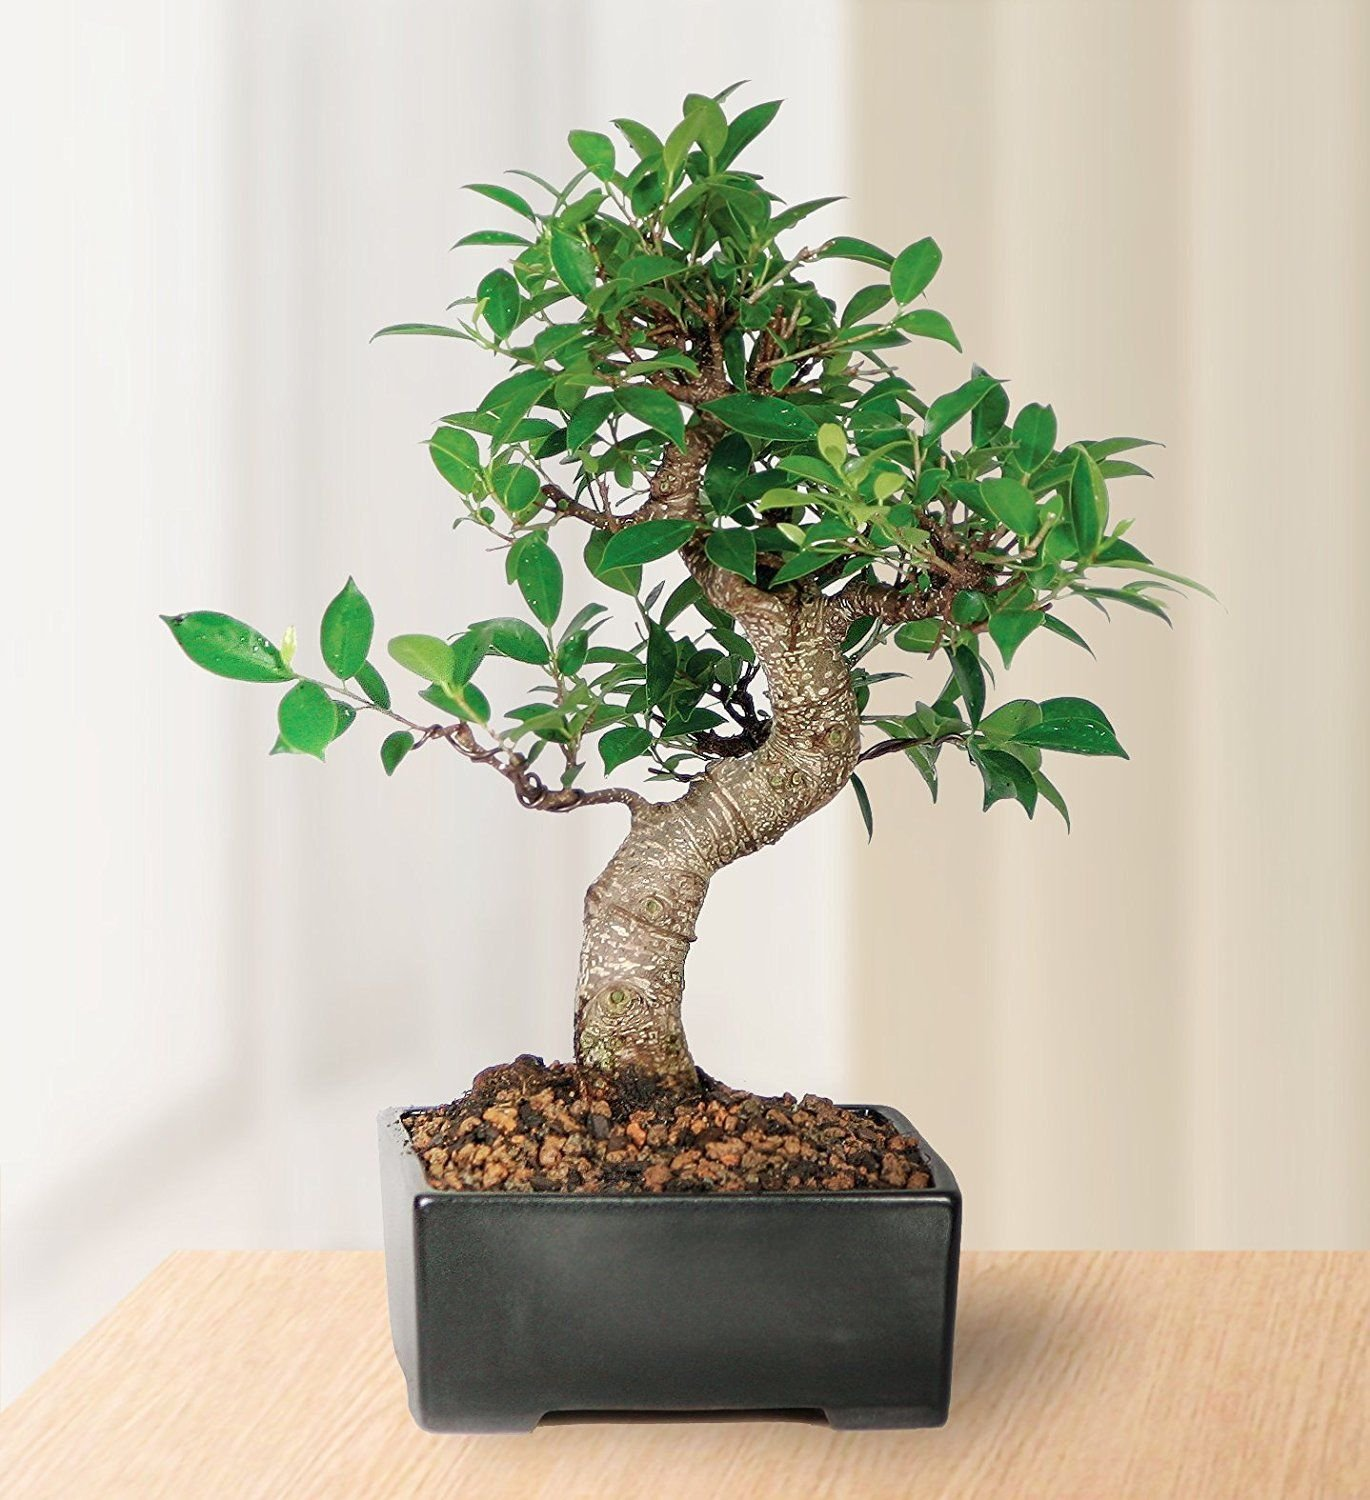 Bonsai Golden Gate Ficus Tree Foliage Plant 7 Years Tropical V3 by Iniloplant (Image #3)